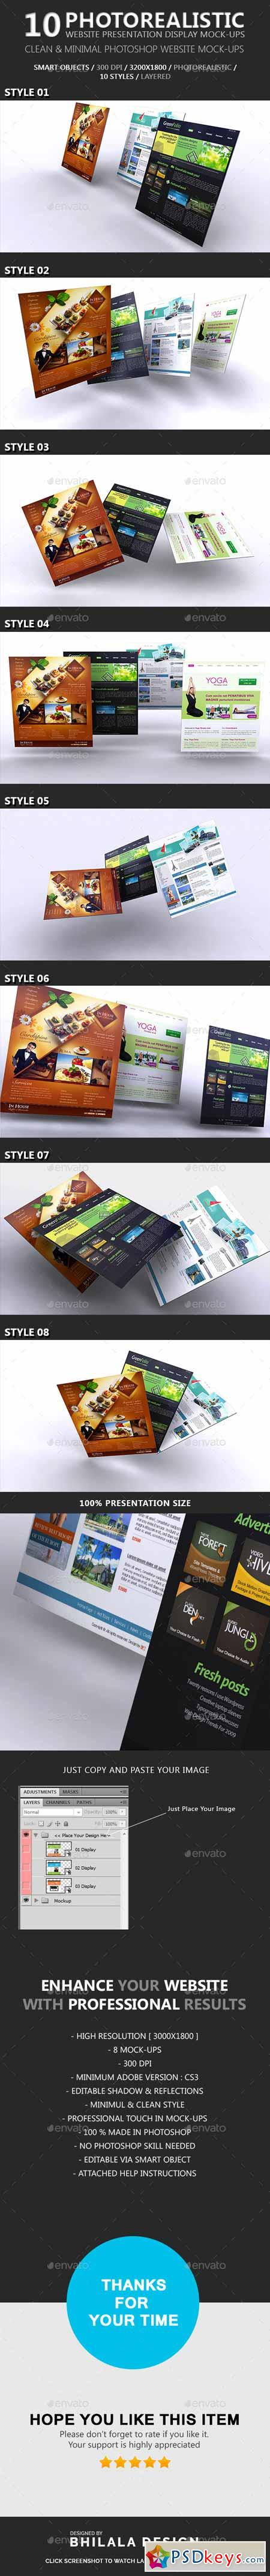 Website Presentation Display Mockup 8816617